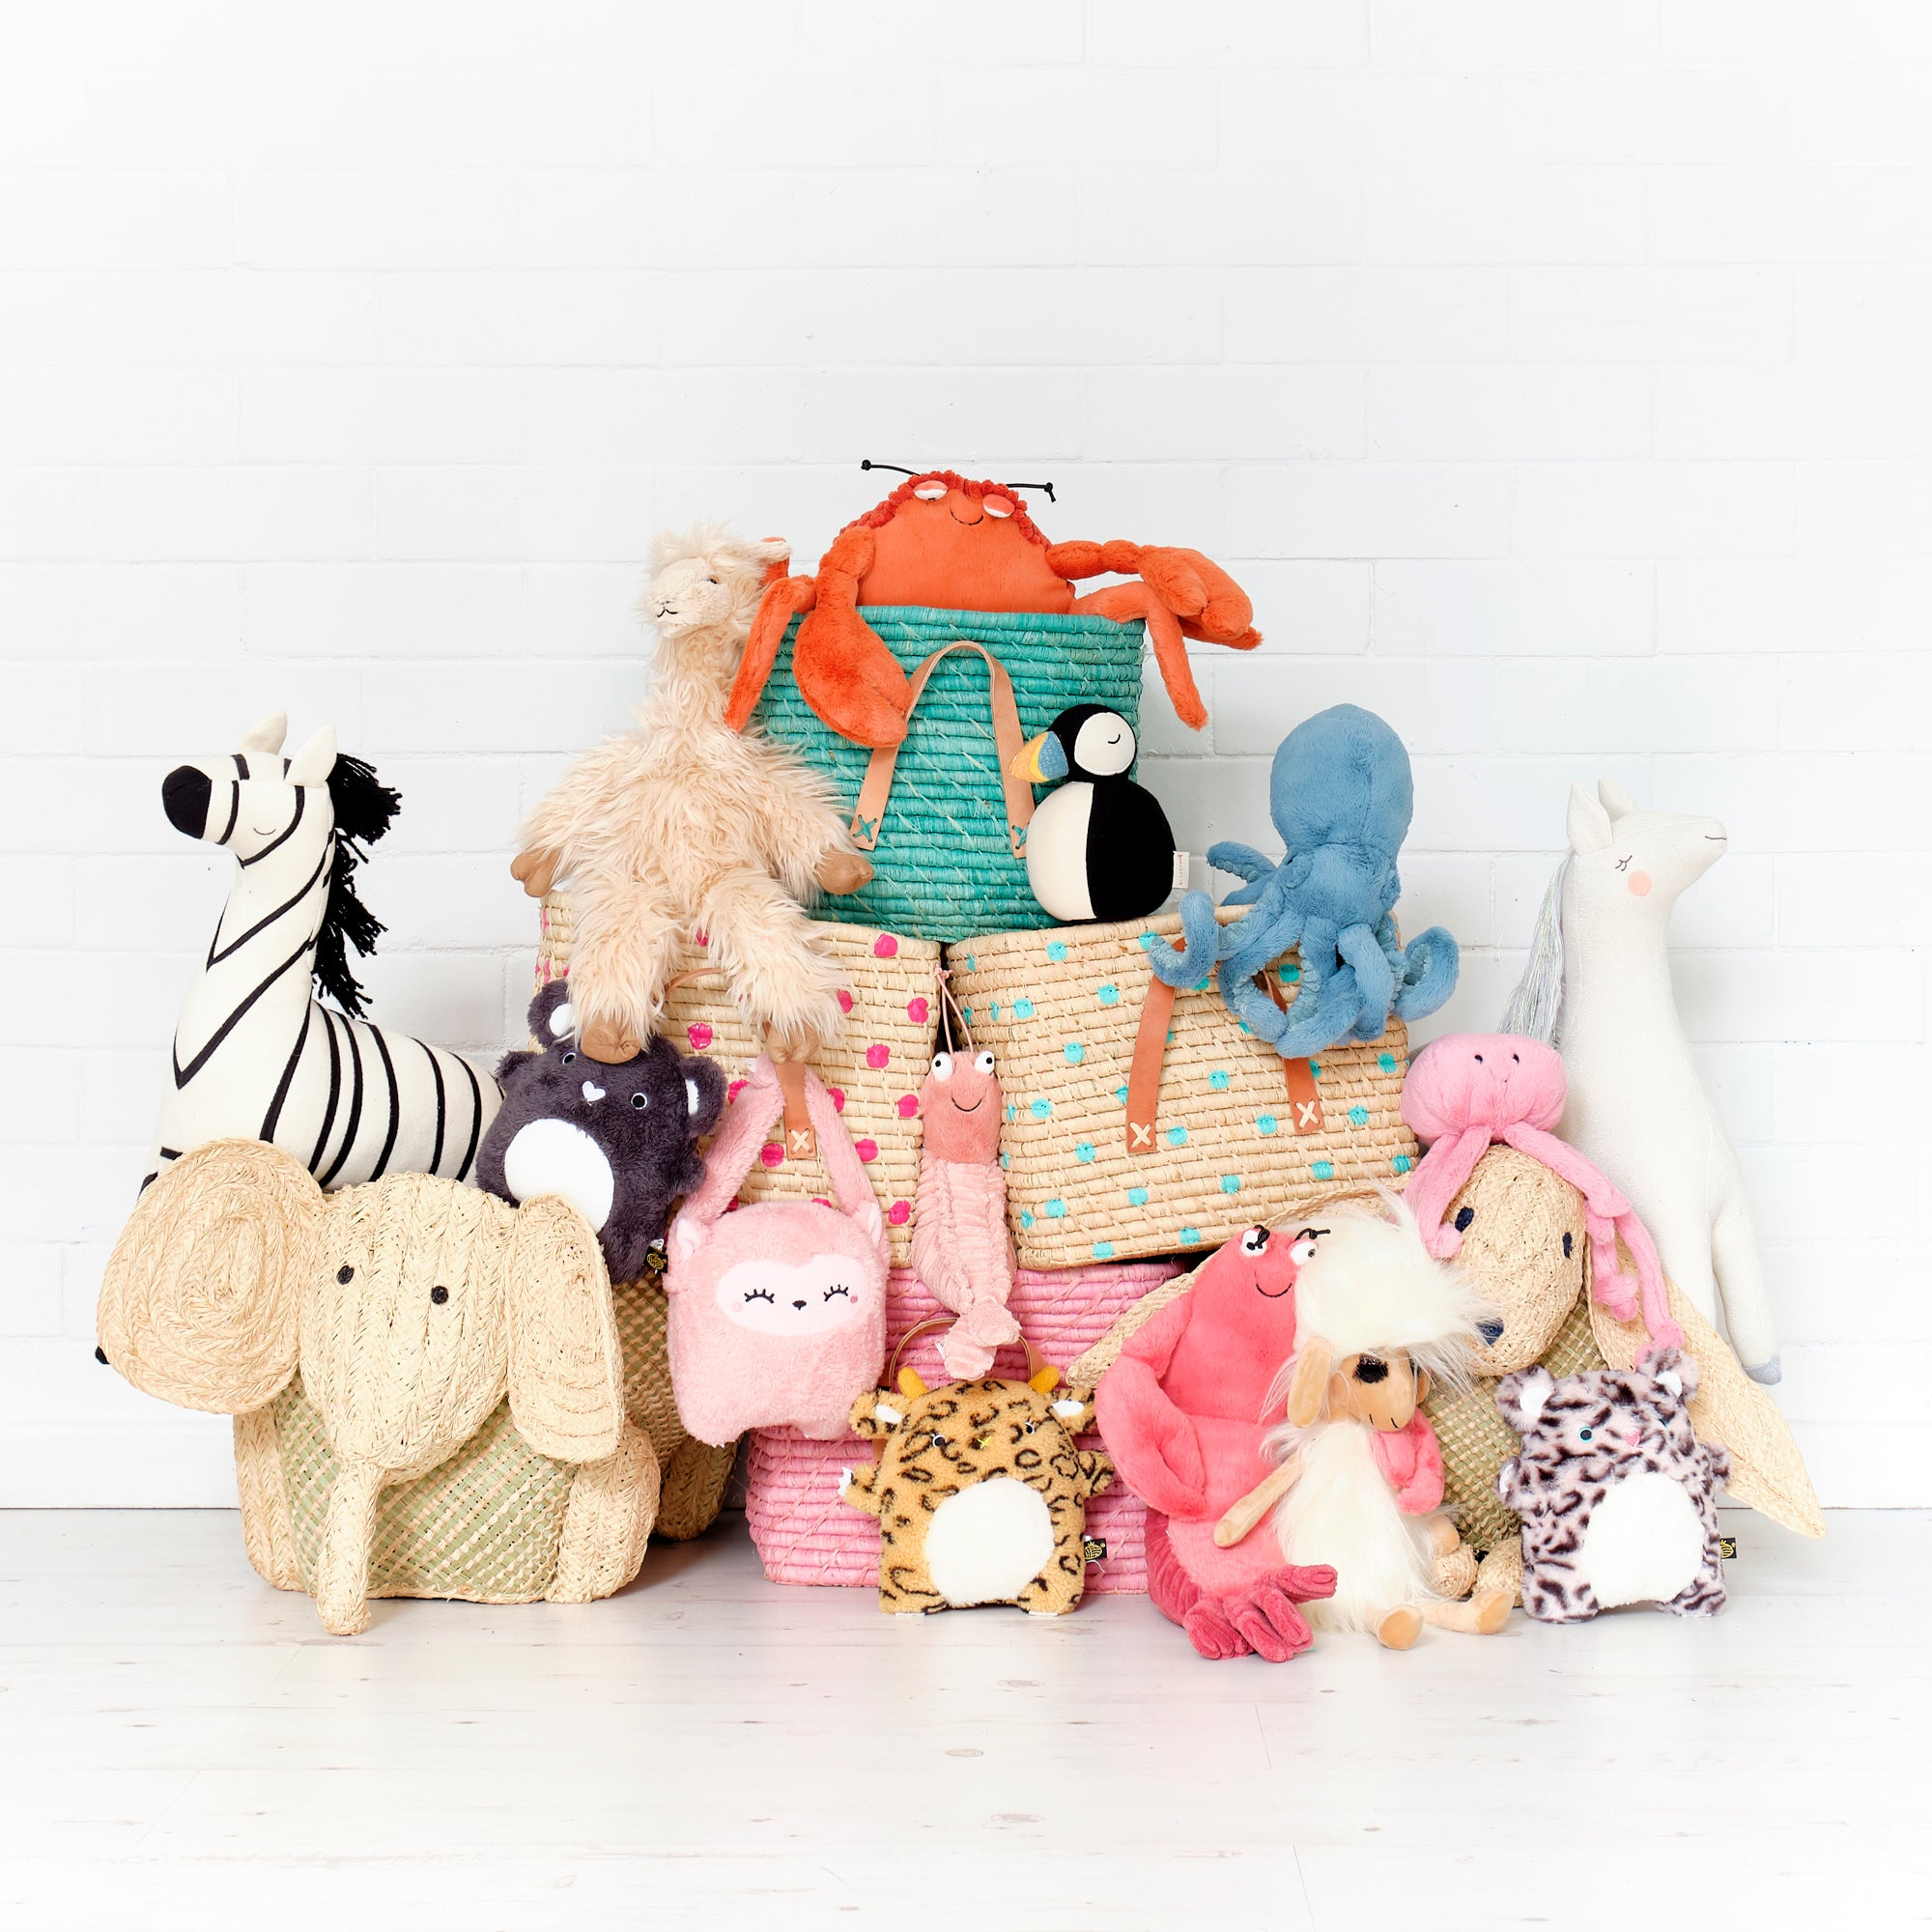 Baskets and Soft Toys, styled by Bobby Rabbit, as featured in Our Royal Baby Book.